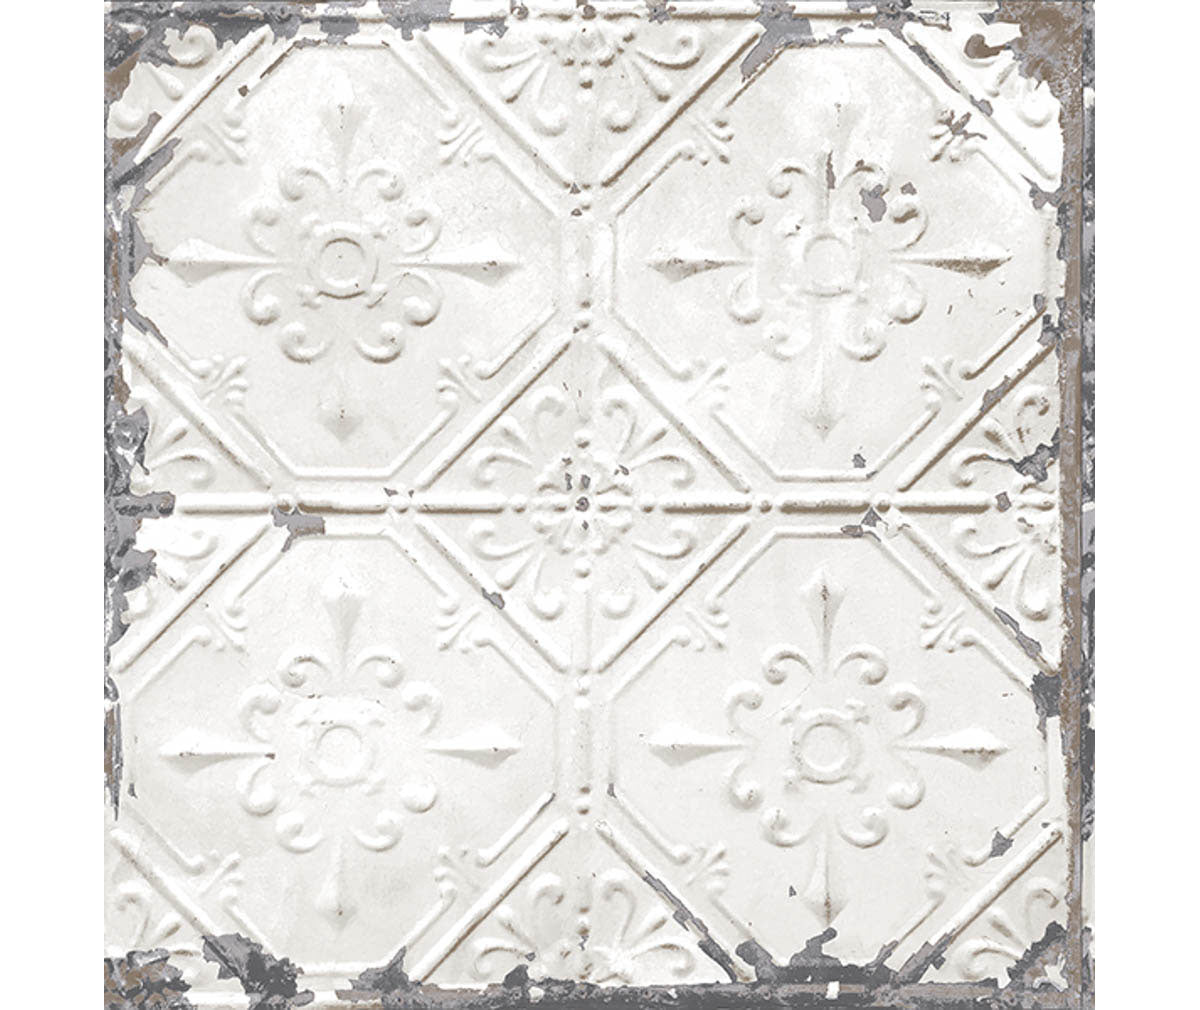 Tin Ceiling White Distressed Tiles Wallpaper available at Barrydowne Paint